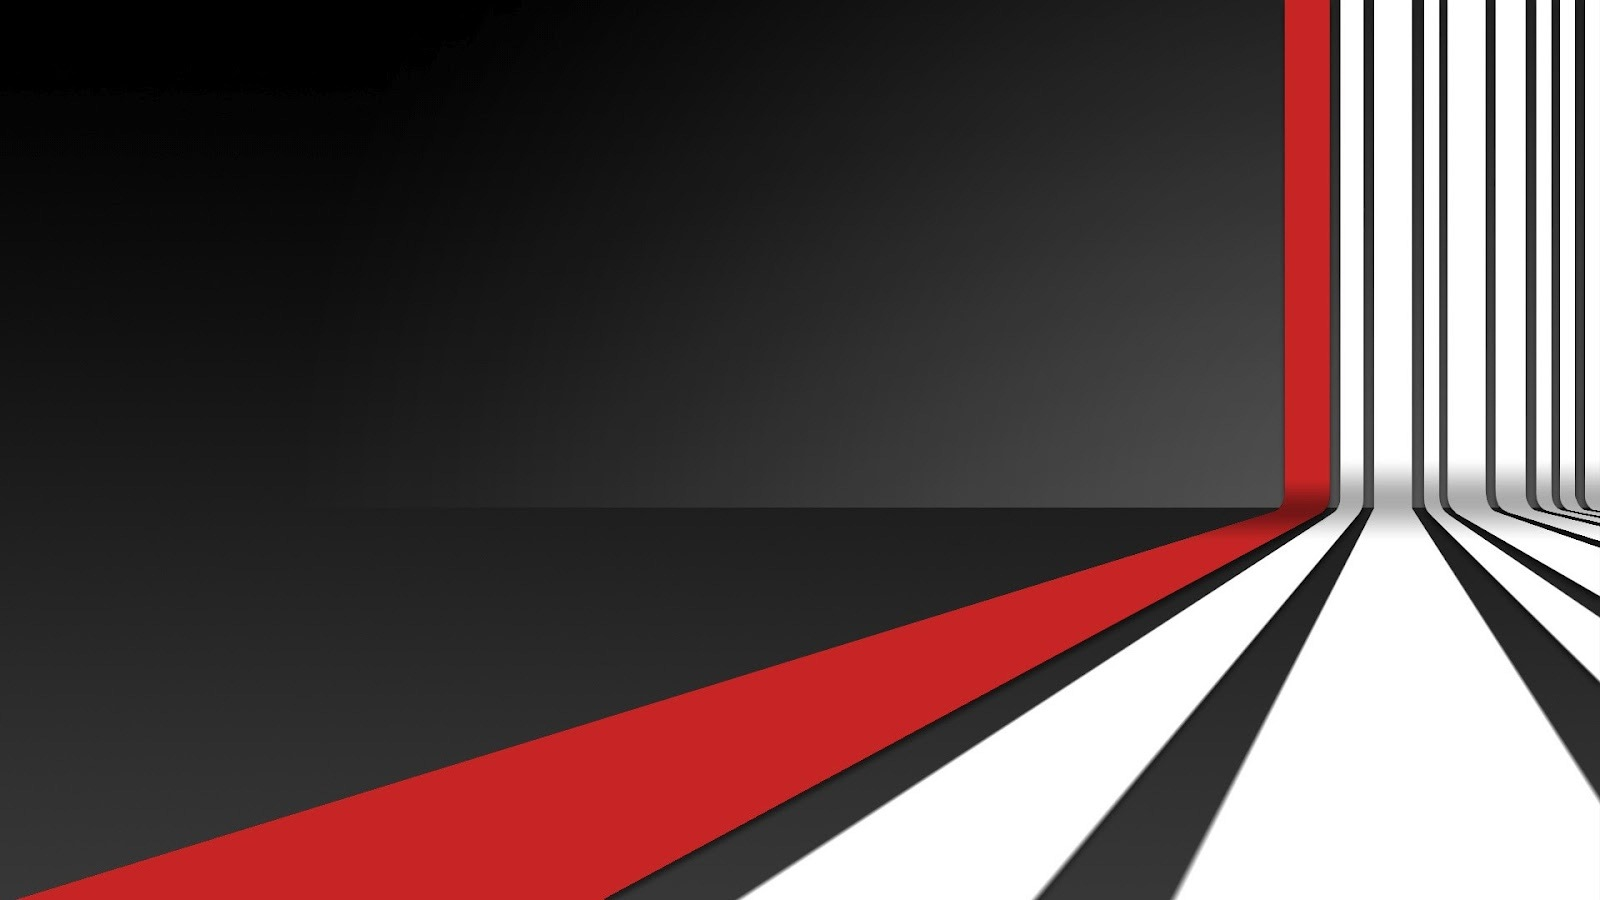 fb33d0fe507 Download Black and Red HD Wallpapers White Line Backgroundsjpg ...